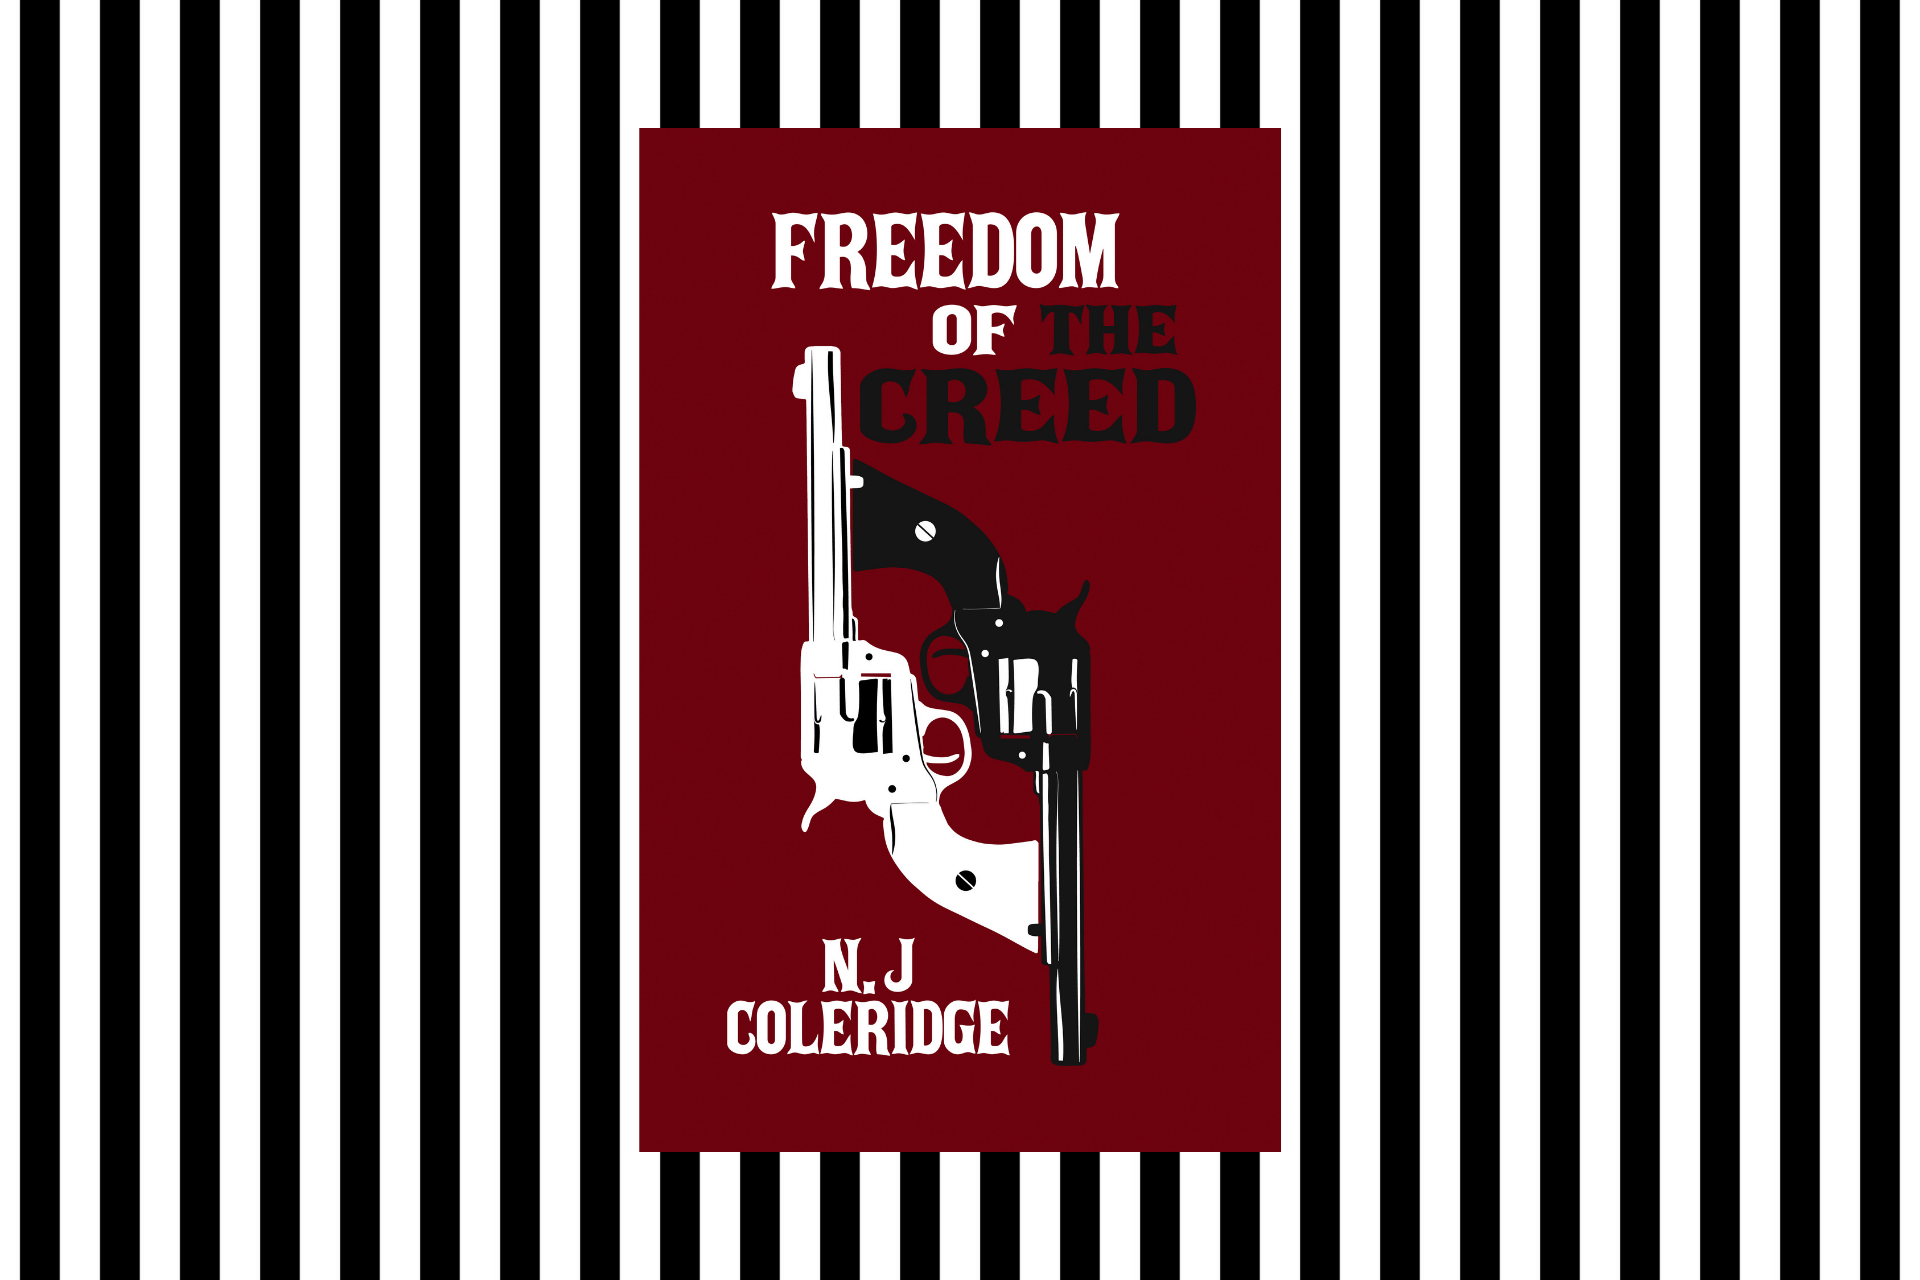 The cover of Freedom of the Creed by N J Coleridge